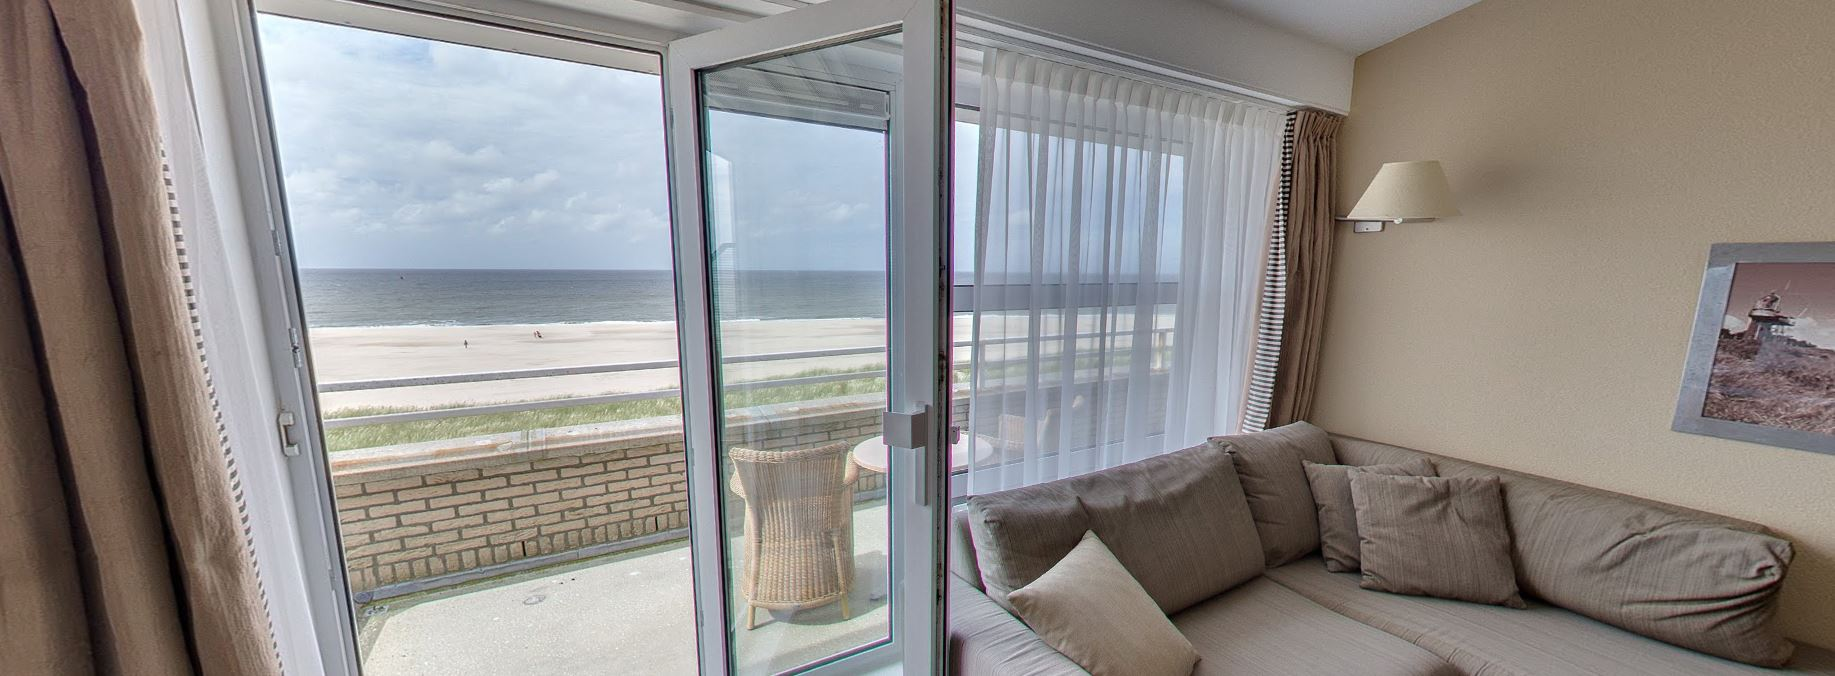 virtual-tour-westcord-strandhotel-seeduyn